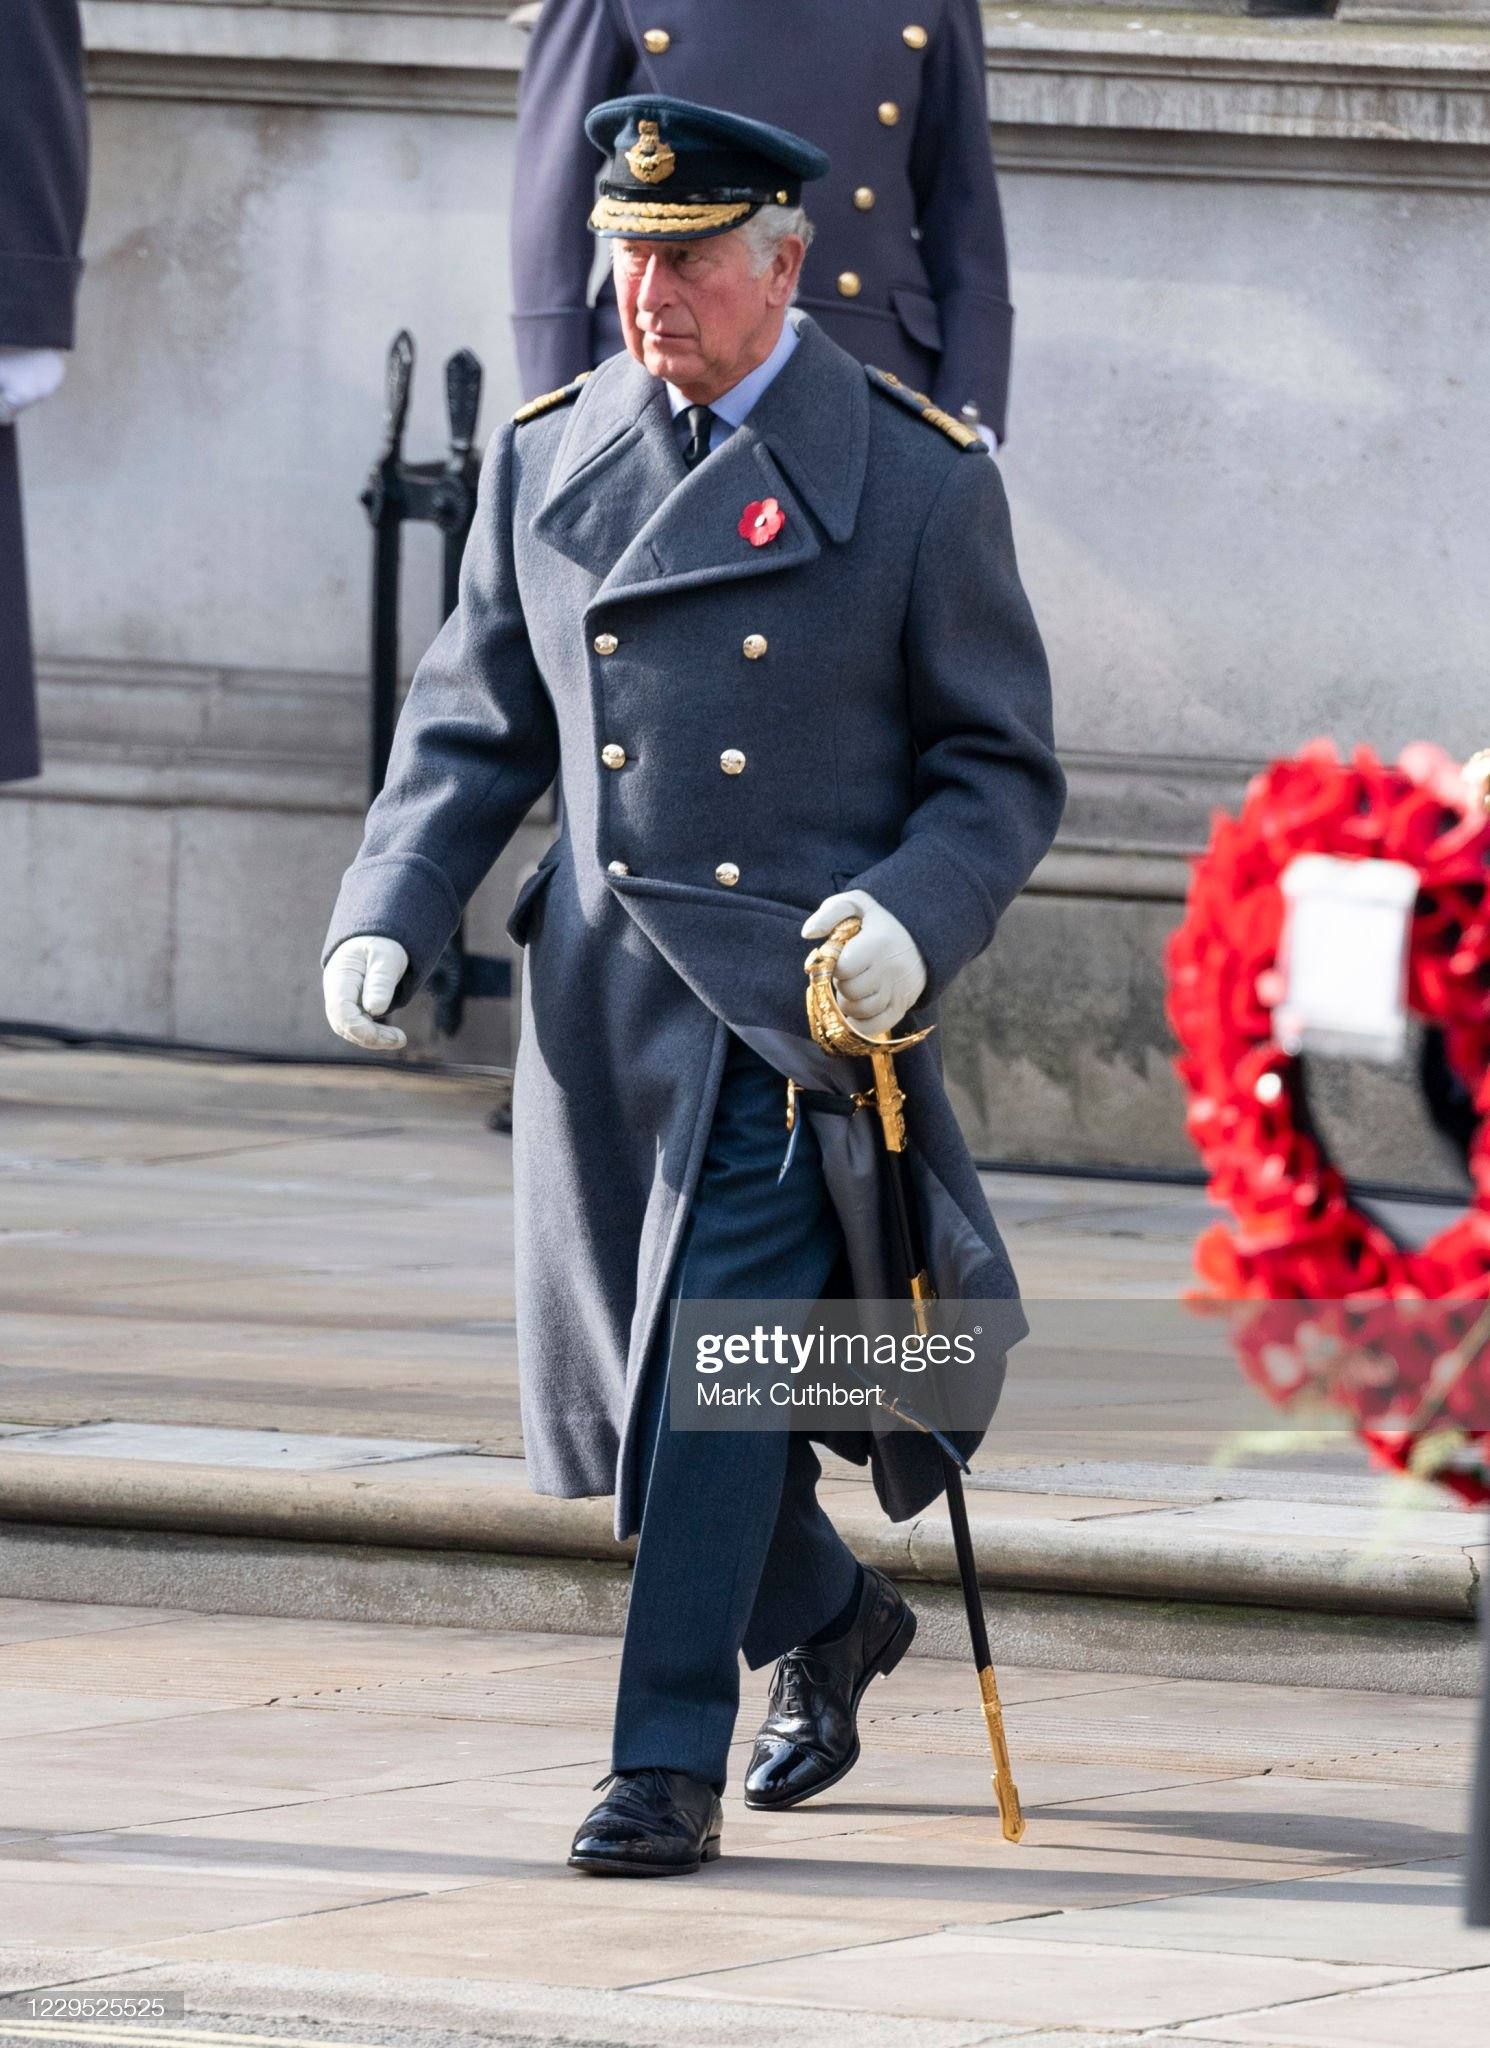 https://media.gettyimages.com/photos/prince-charles-prince-of-wales-attends-the-annual-remembrance-sunday-picture-id1229525525?s=2048x2048